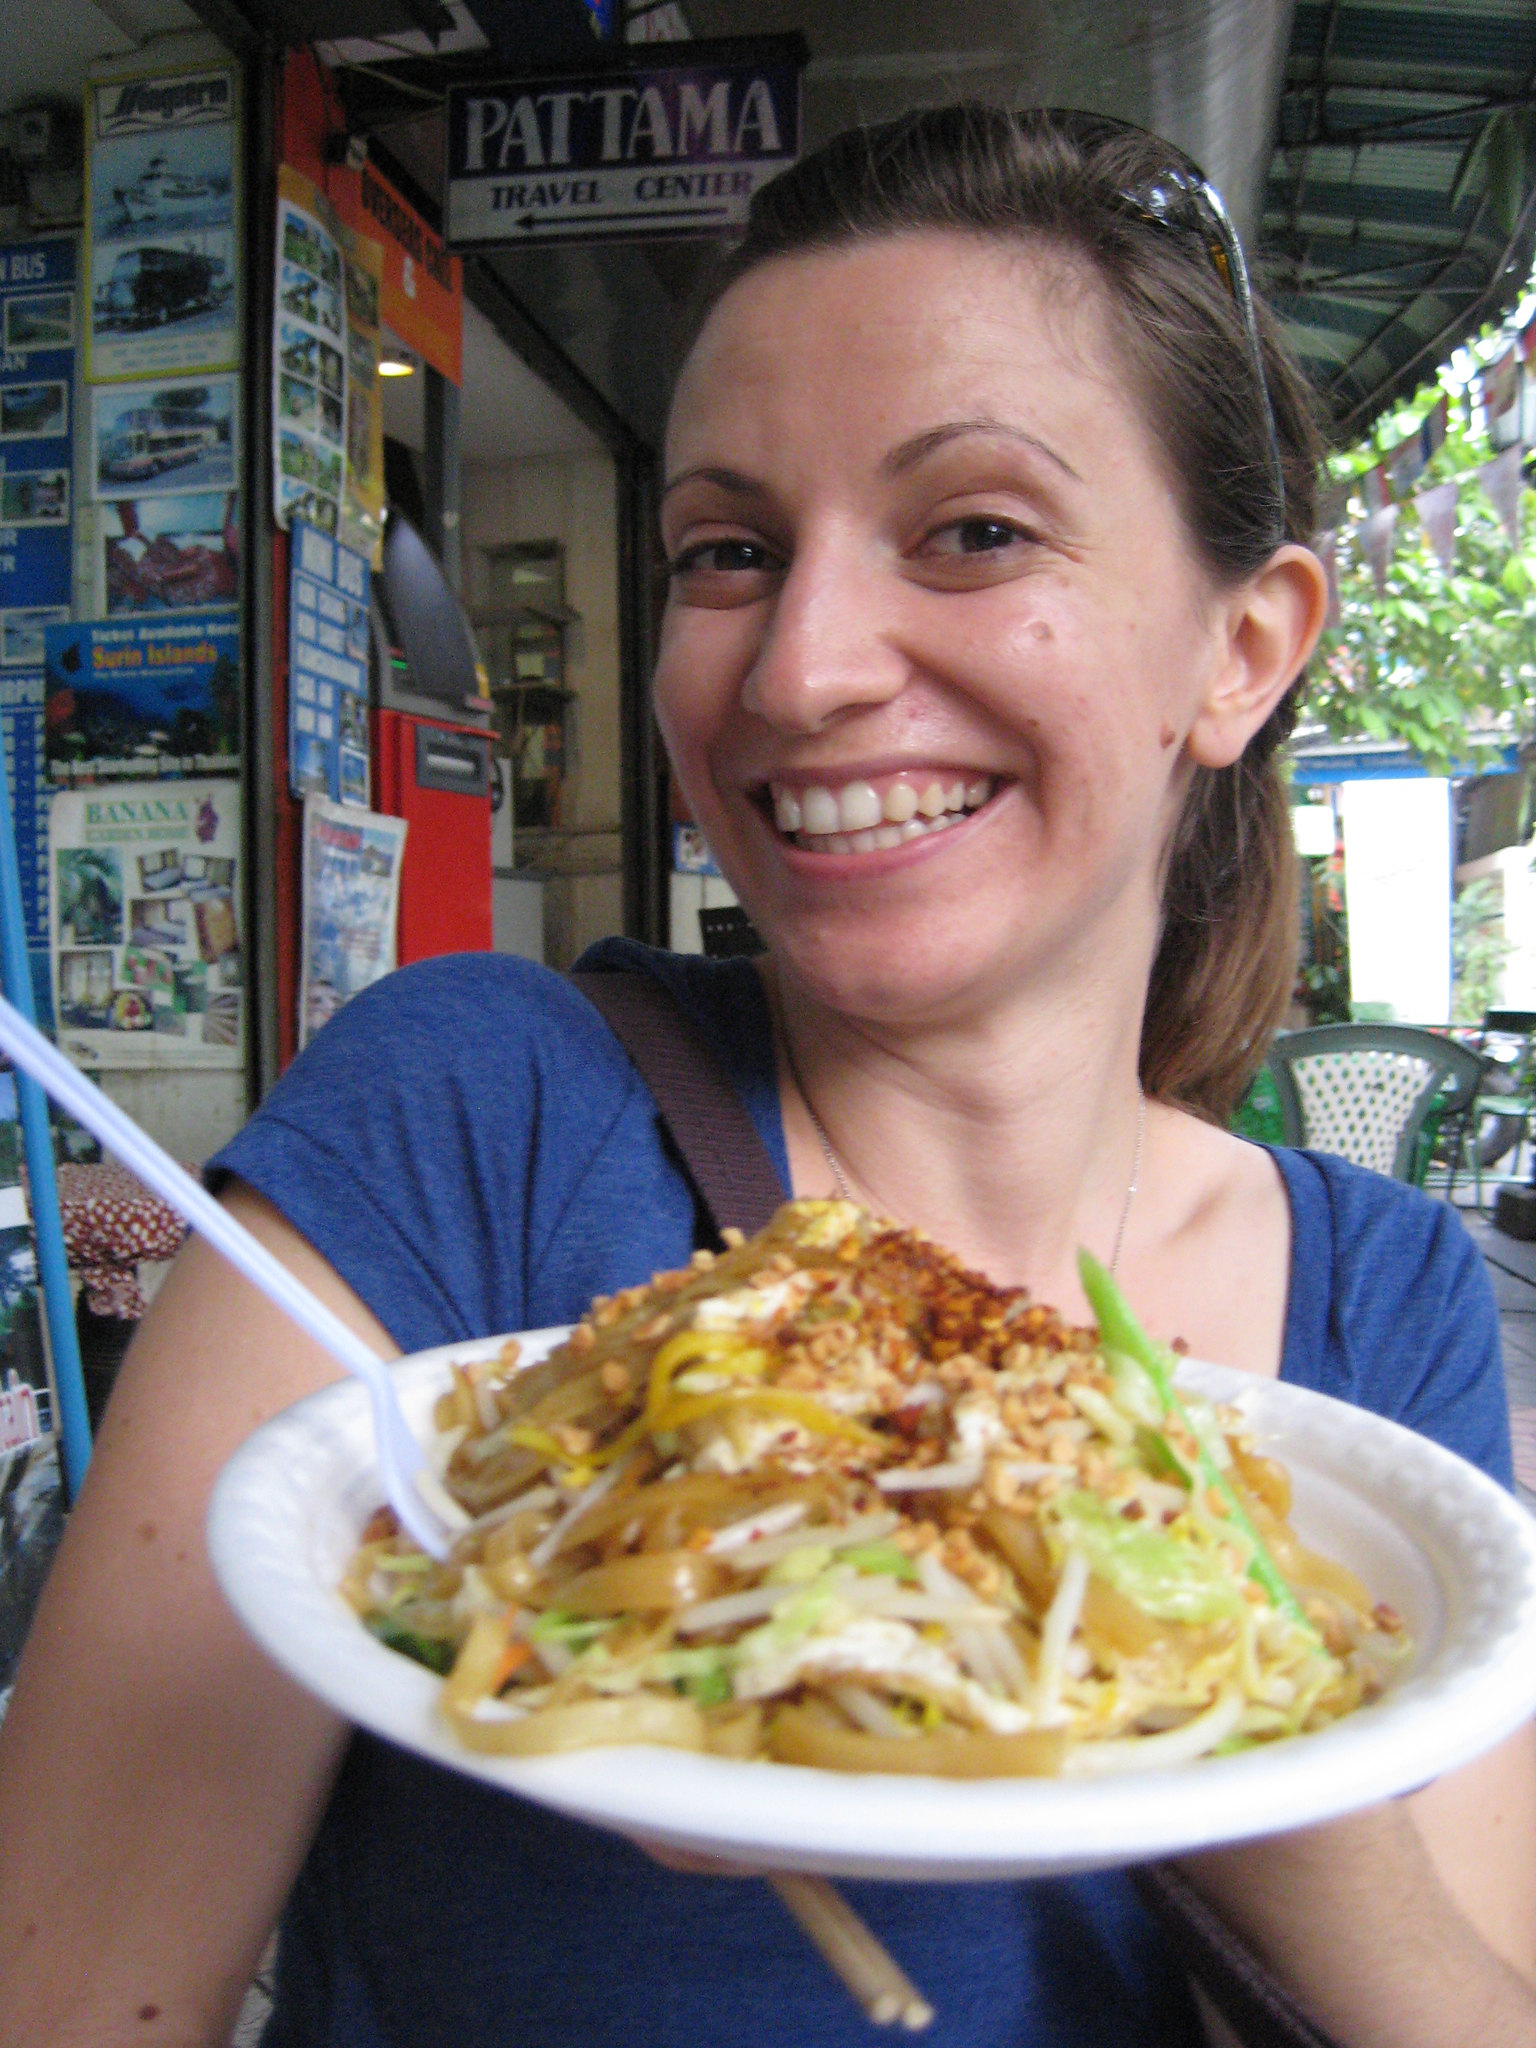 Travel Tips For Singapore: Save Money With Meals at Hawker Centers